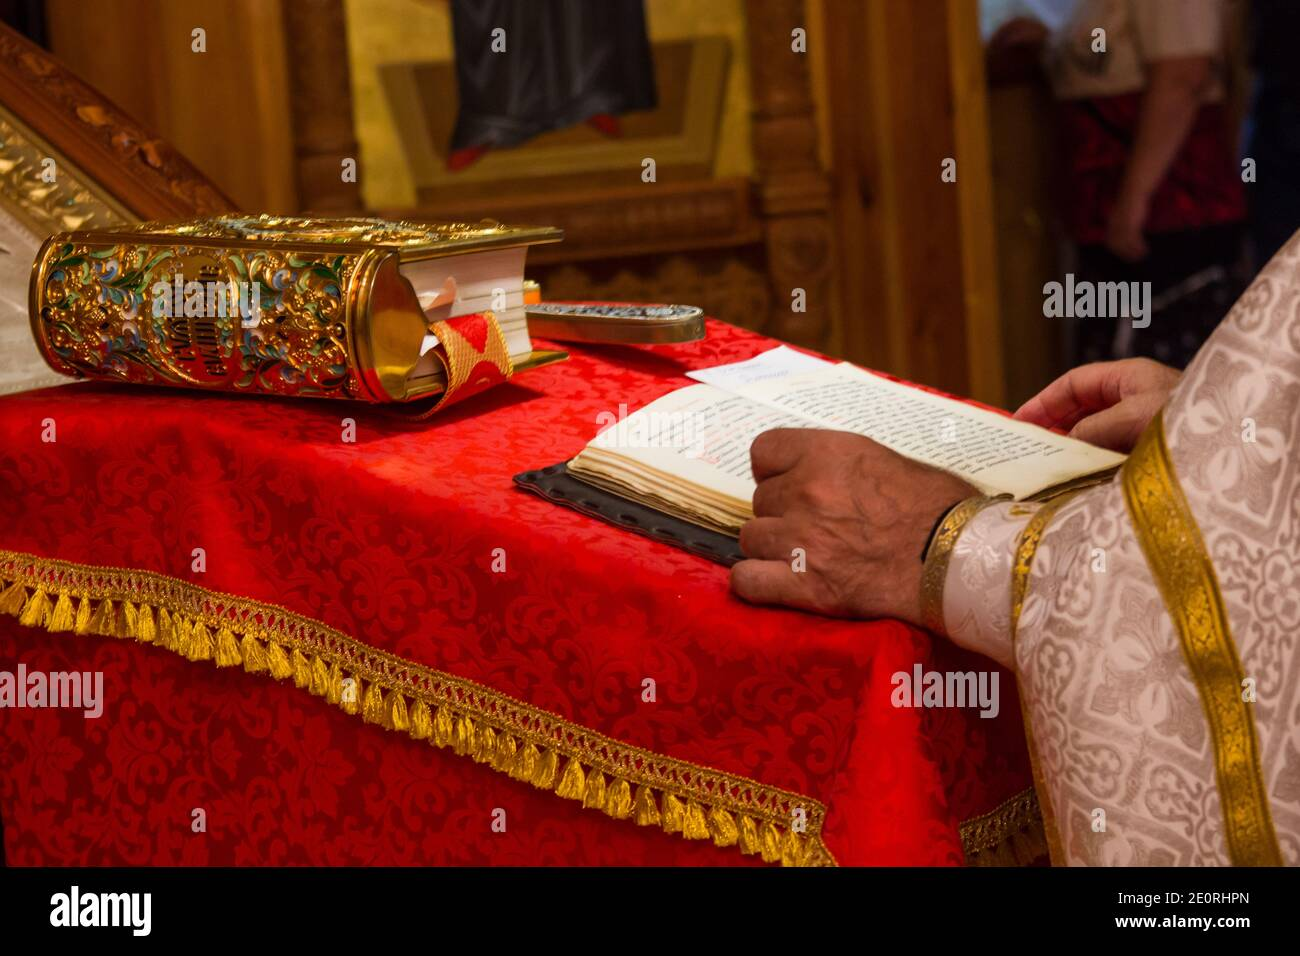 A priest holding the Bible at a christian ritual. Christian celebraton Stock Photo